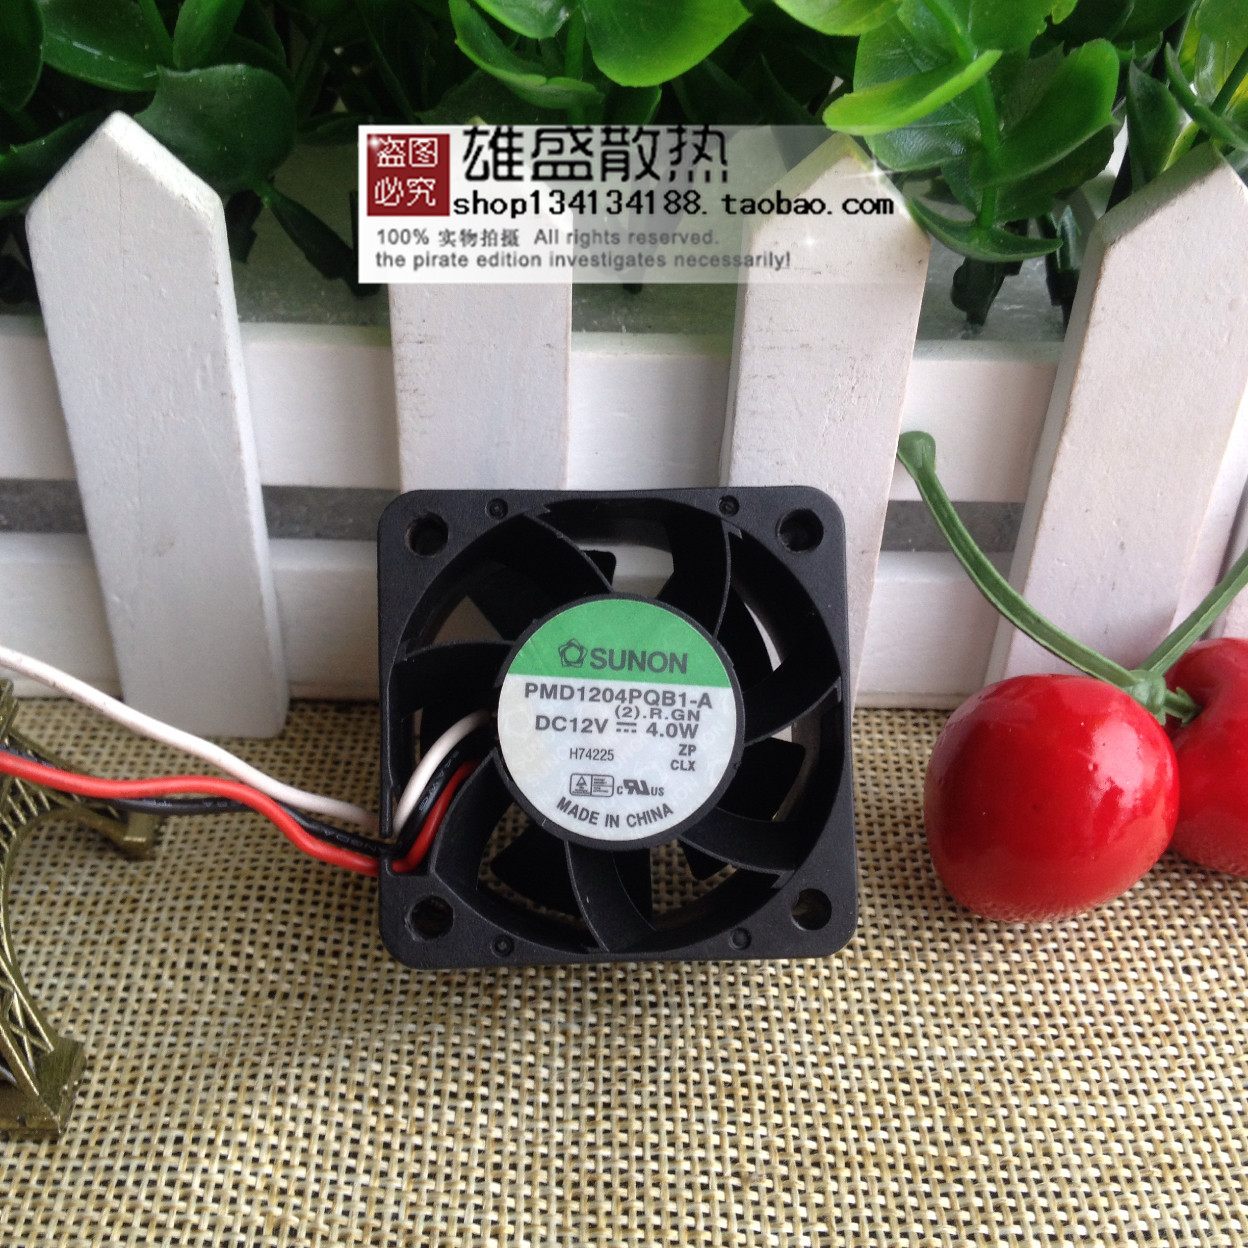 A Cooling Fan REFIT 4028//2811 high-Speed PMD1204PQB1